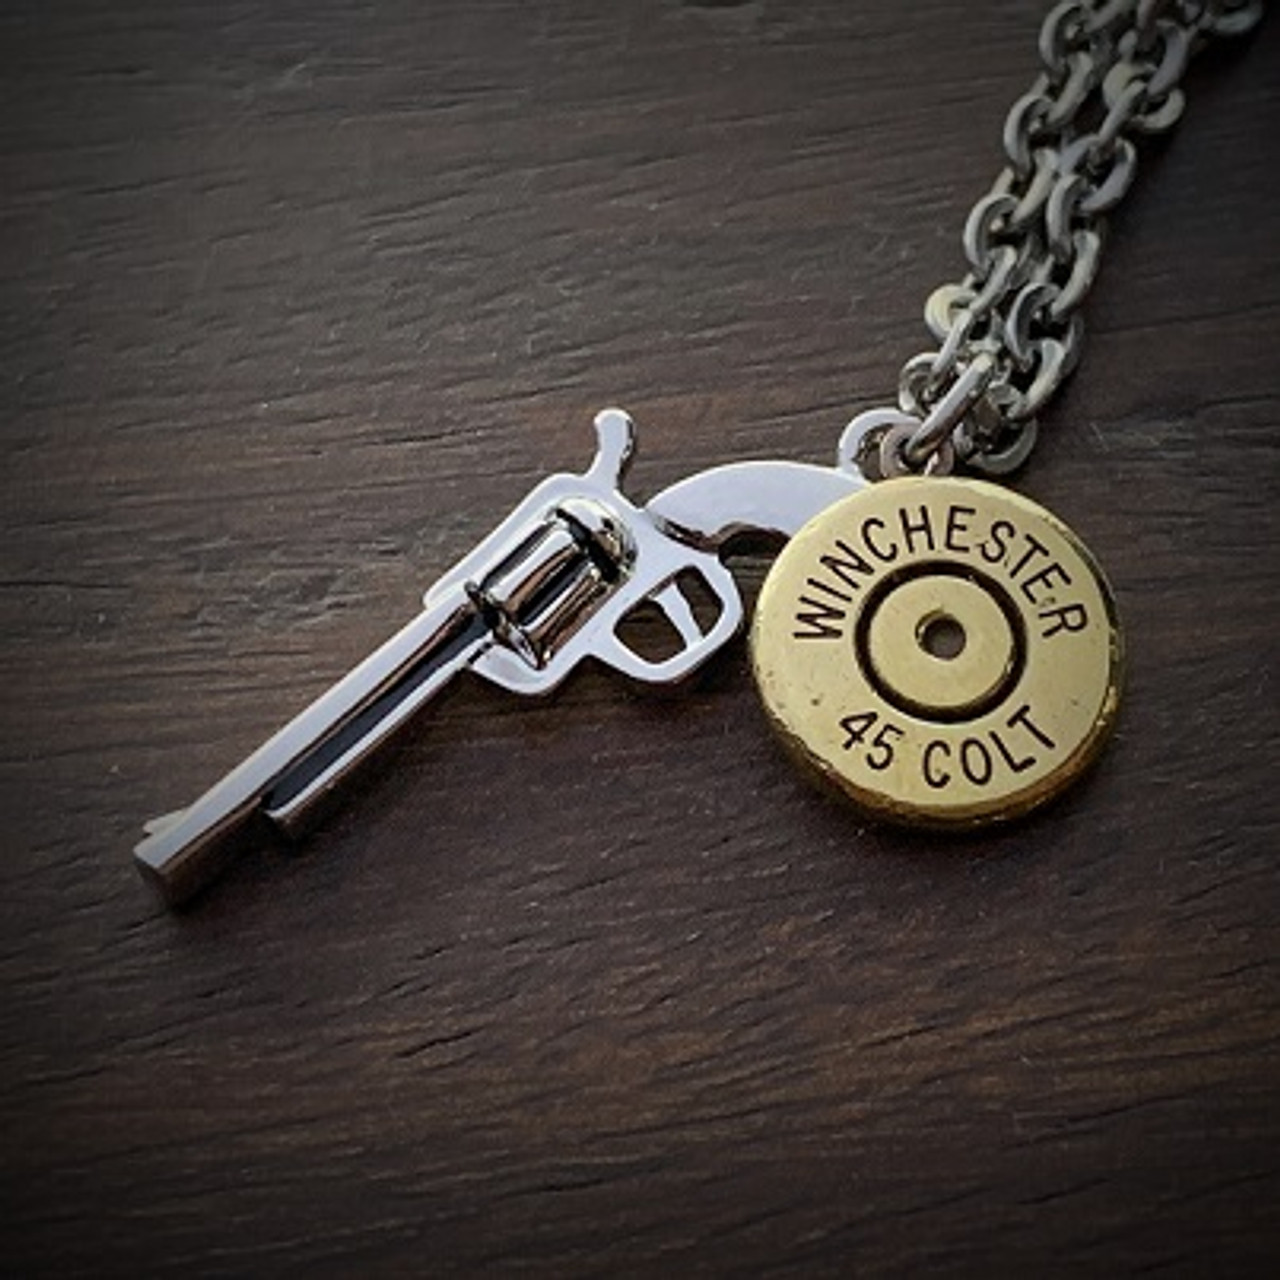 Personalized Bullet Necklace  Silver Bullet Necklace  Gun Necklace  Unisex Steampunk Necklace  Apocalypse Jewelry  Bullet Jewelry Gift